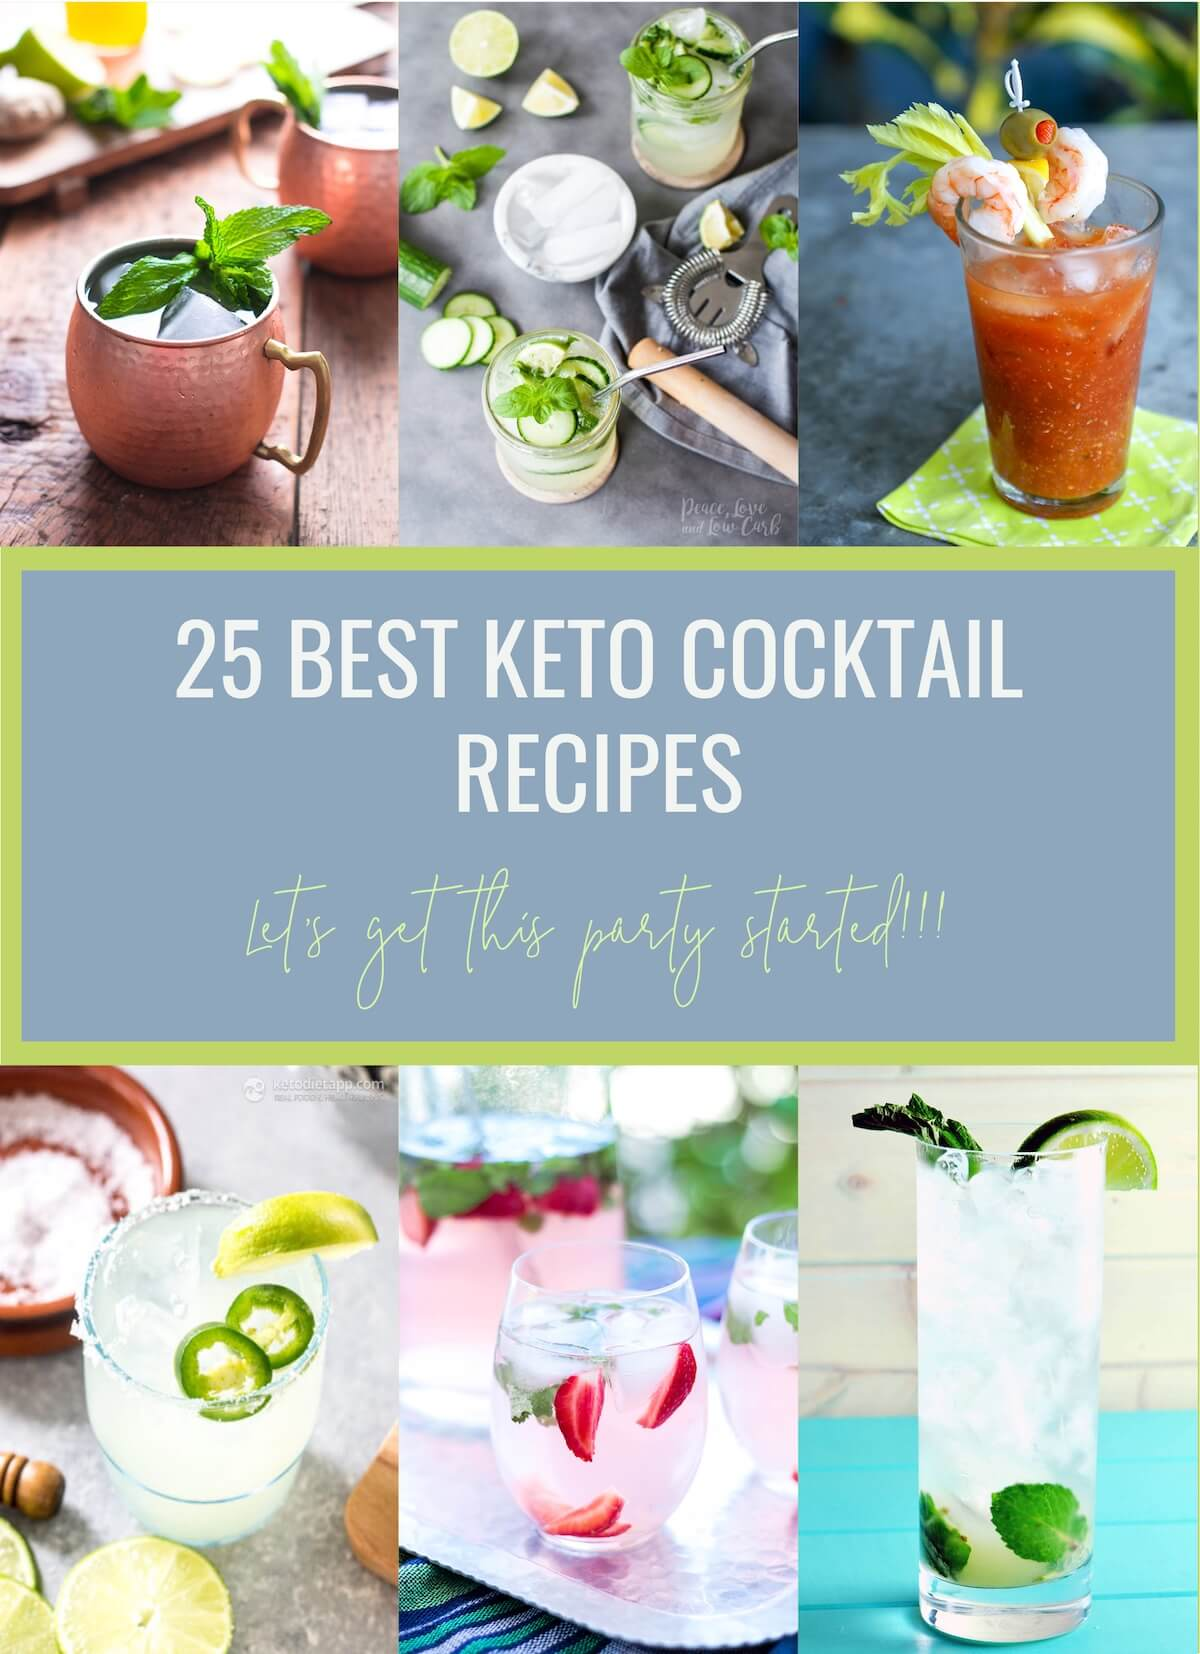 25 Best Latest Nail Designs Ideas On Pinterest: 25 Best Keto Cocktail Recipes - Low Carb